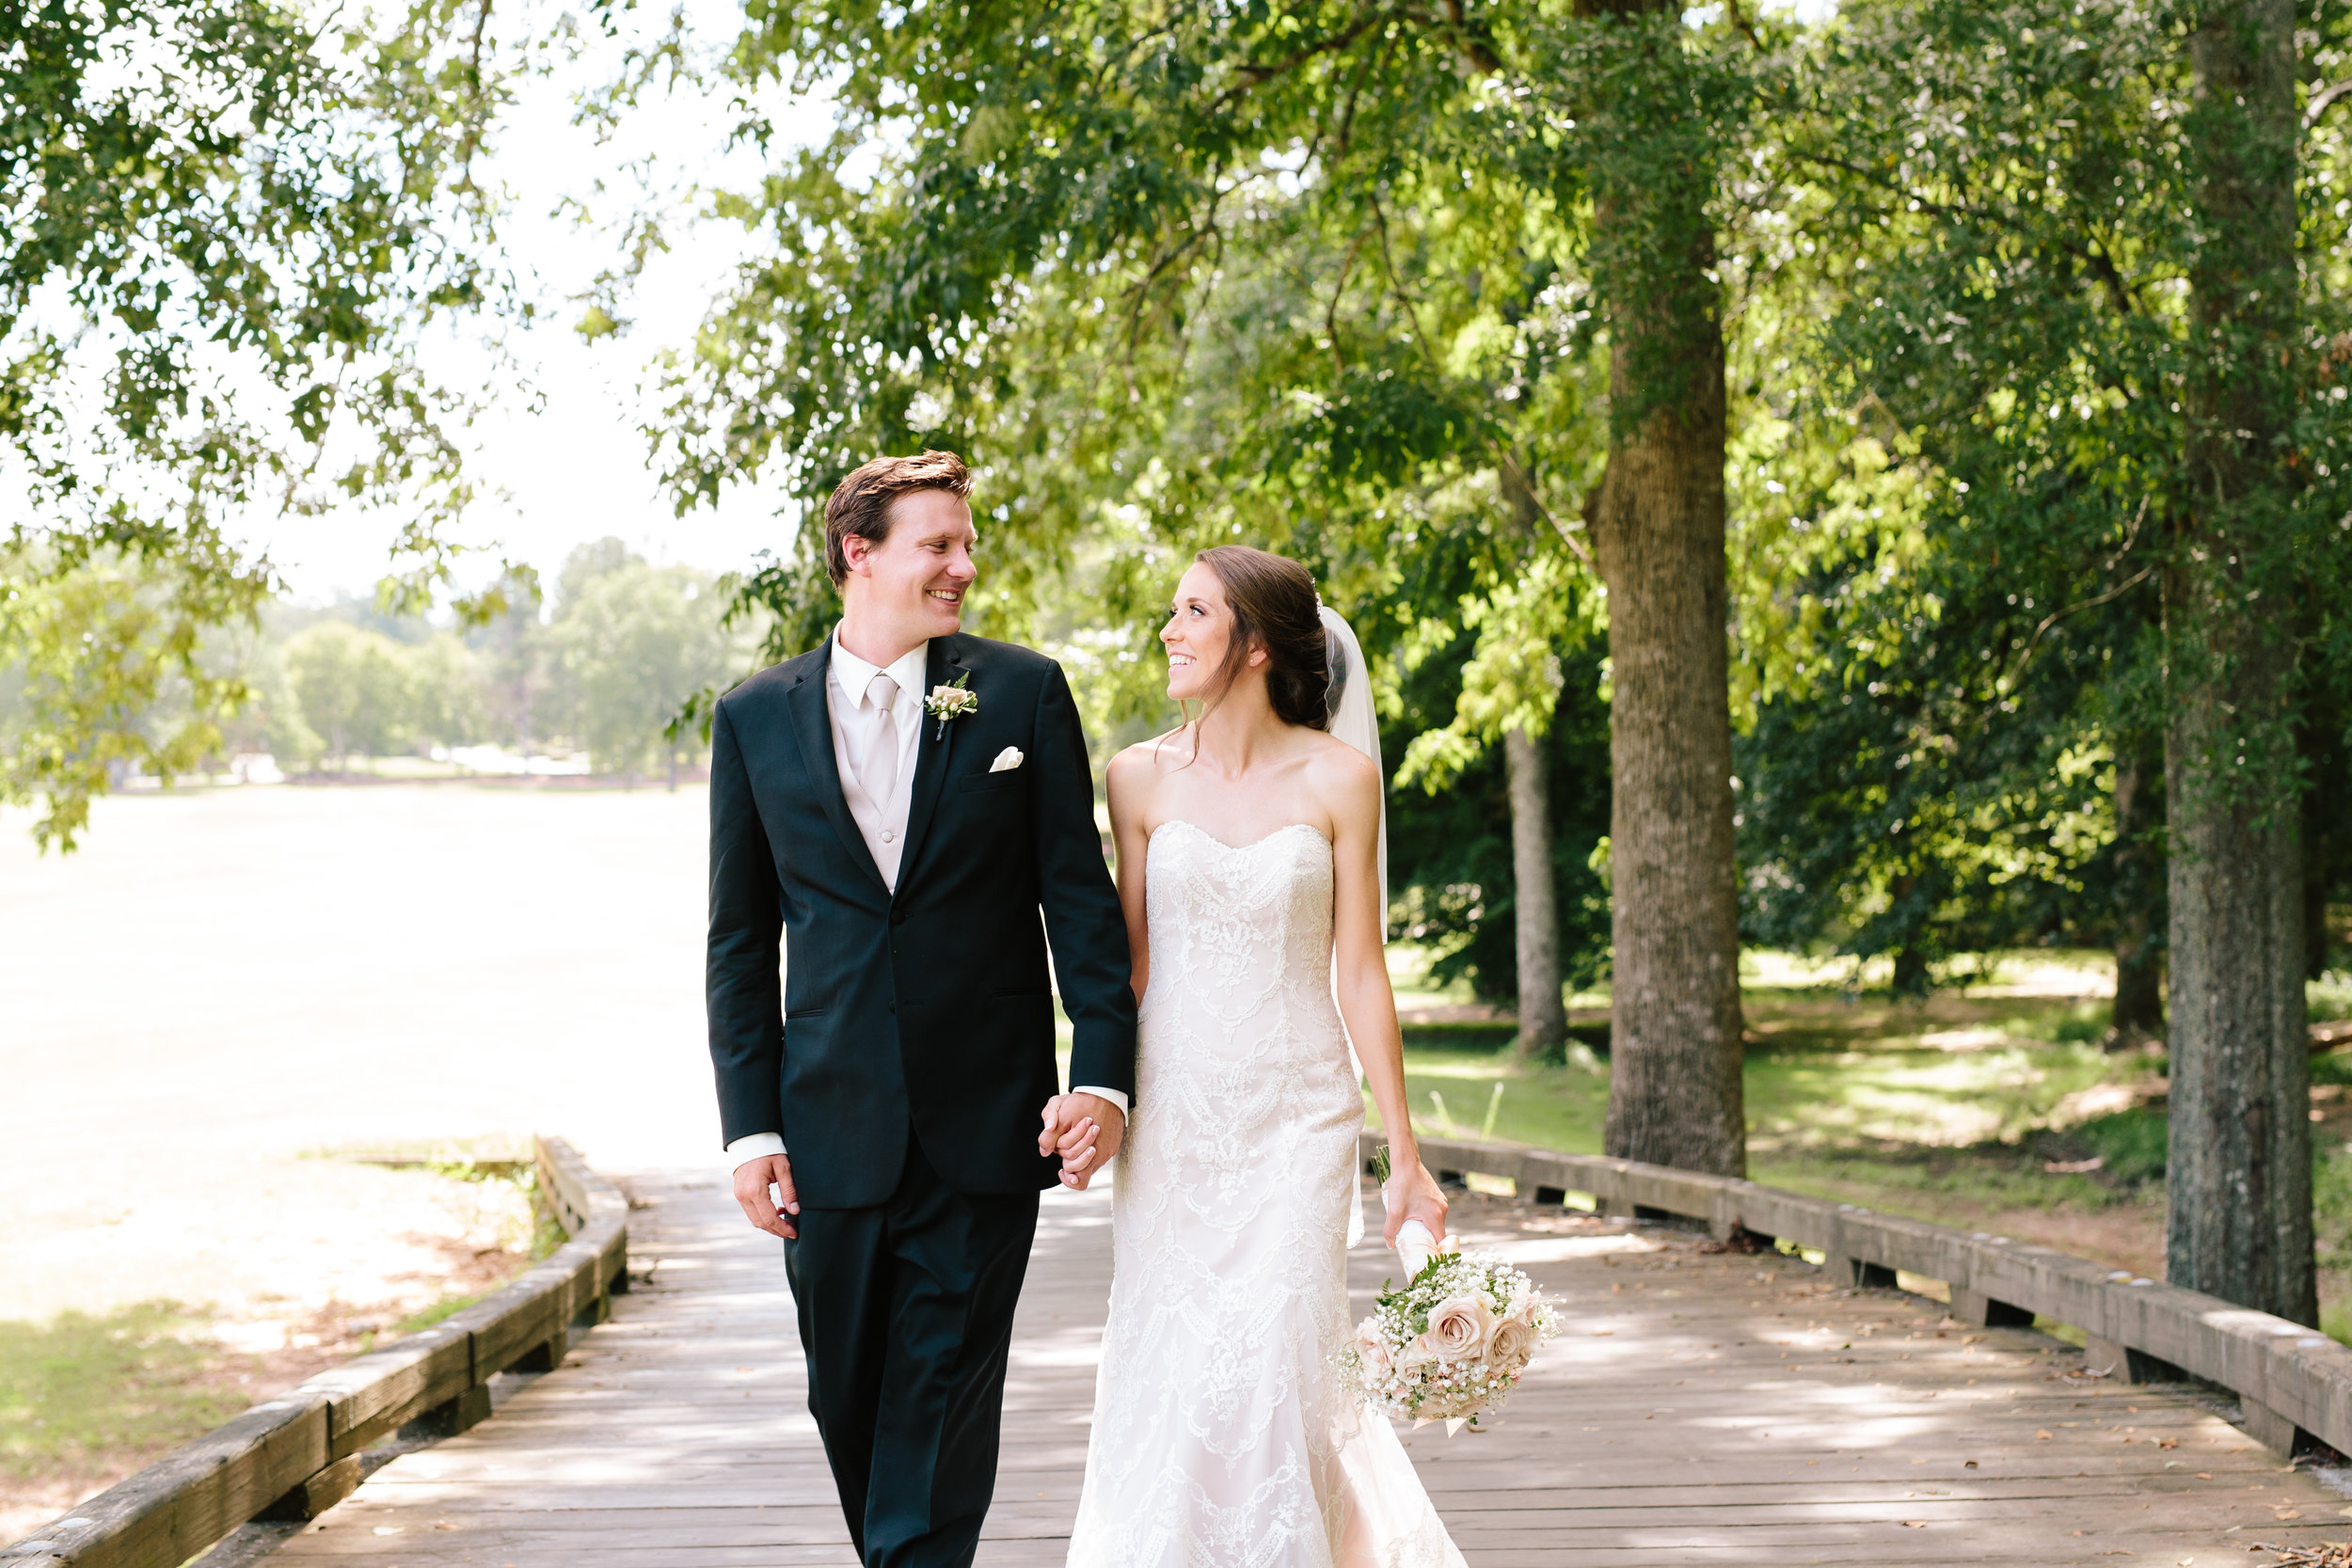 Emily + Austin Wedding (240 of 256).jpg